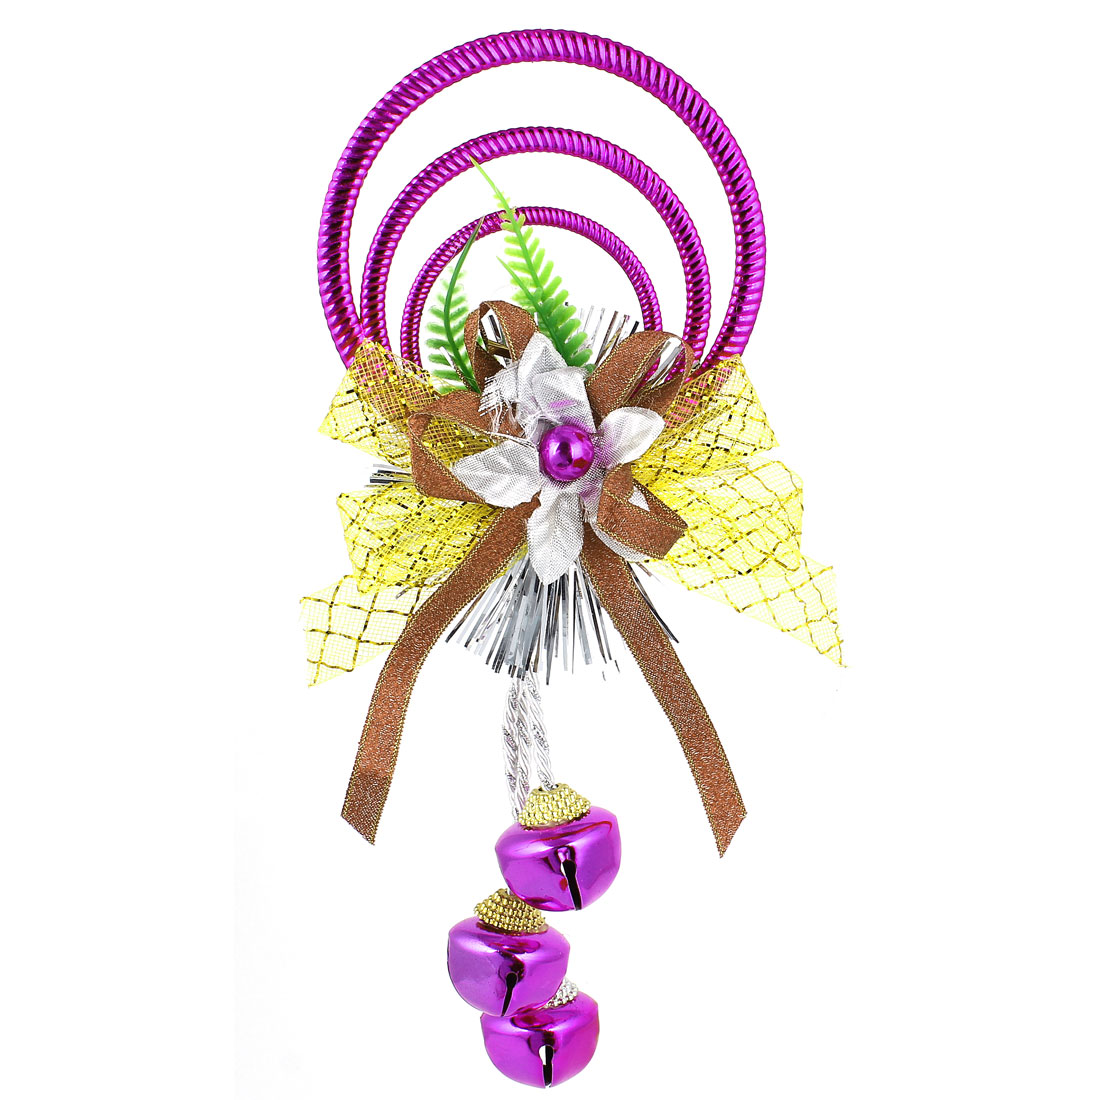 Bowknot Flowers Detail Plastic Rings Metal Bell Pendant Purple for Christmas Xmas Tree Decor